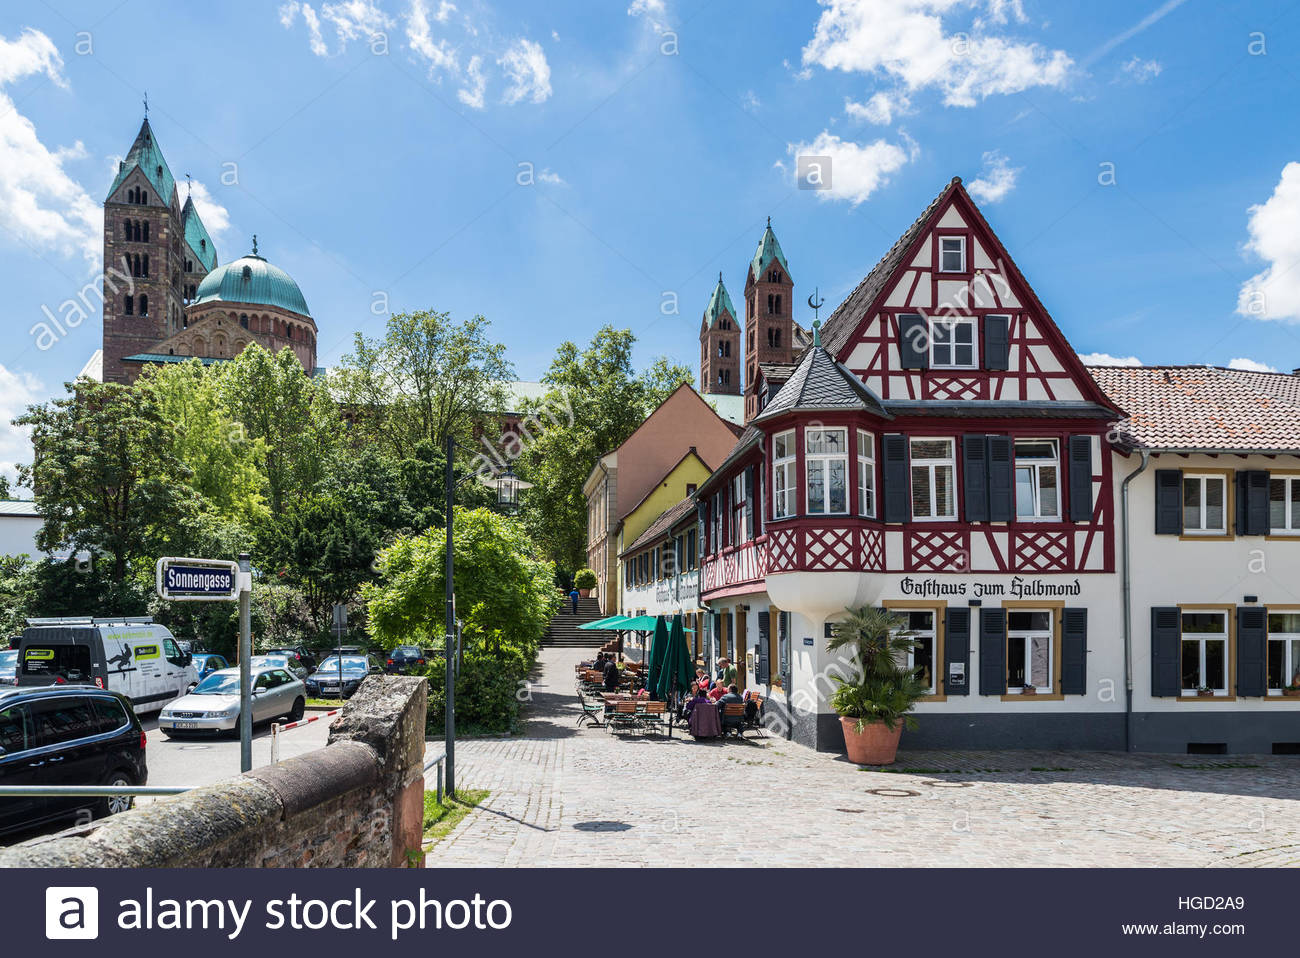 View of a Speyer guesthouse with Dom in the background - Stock Image